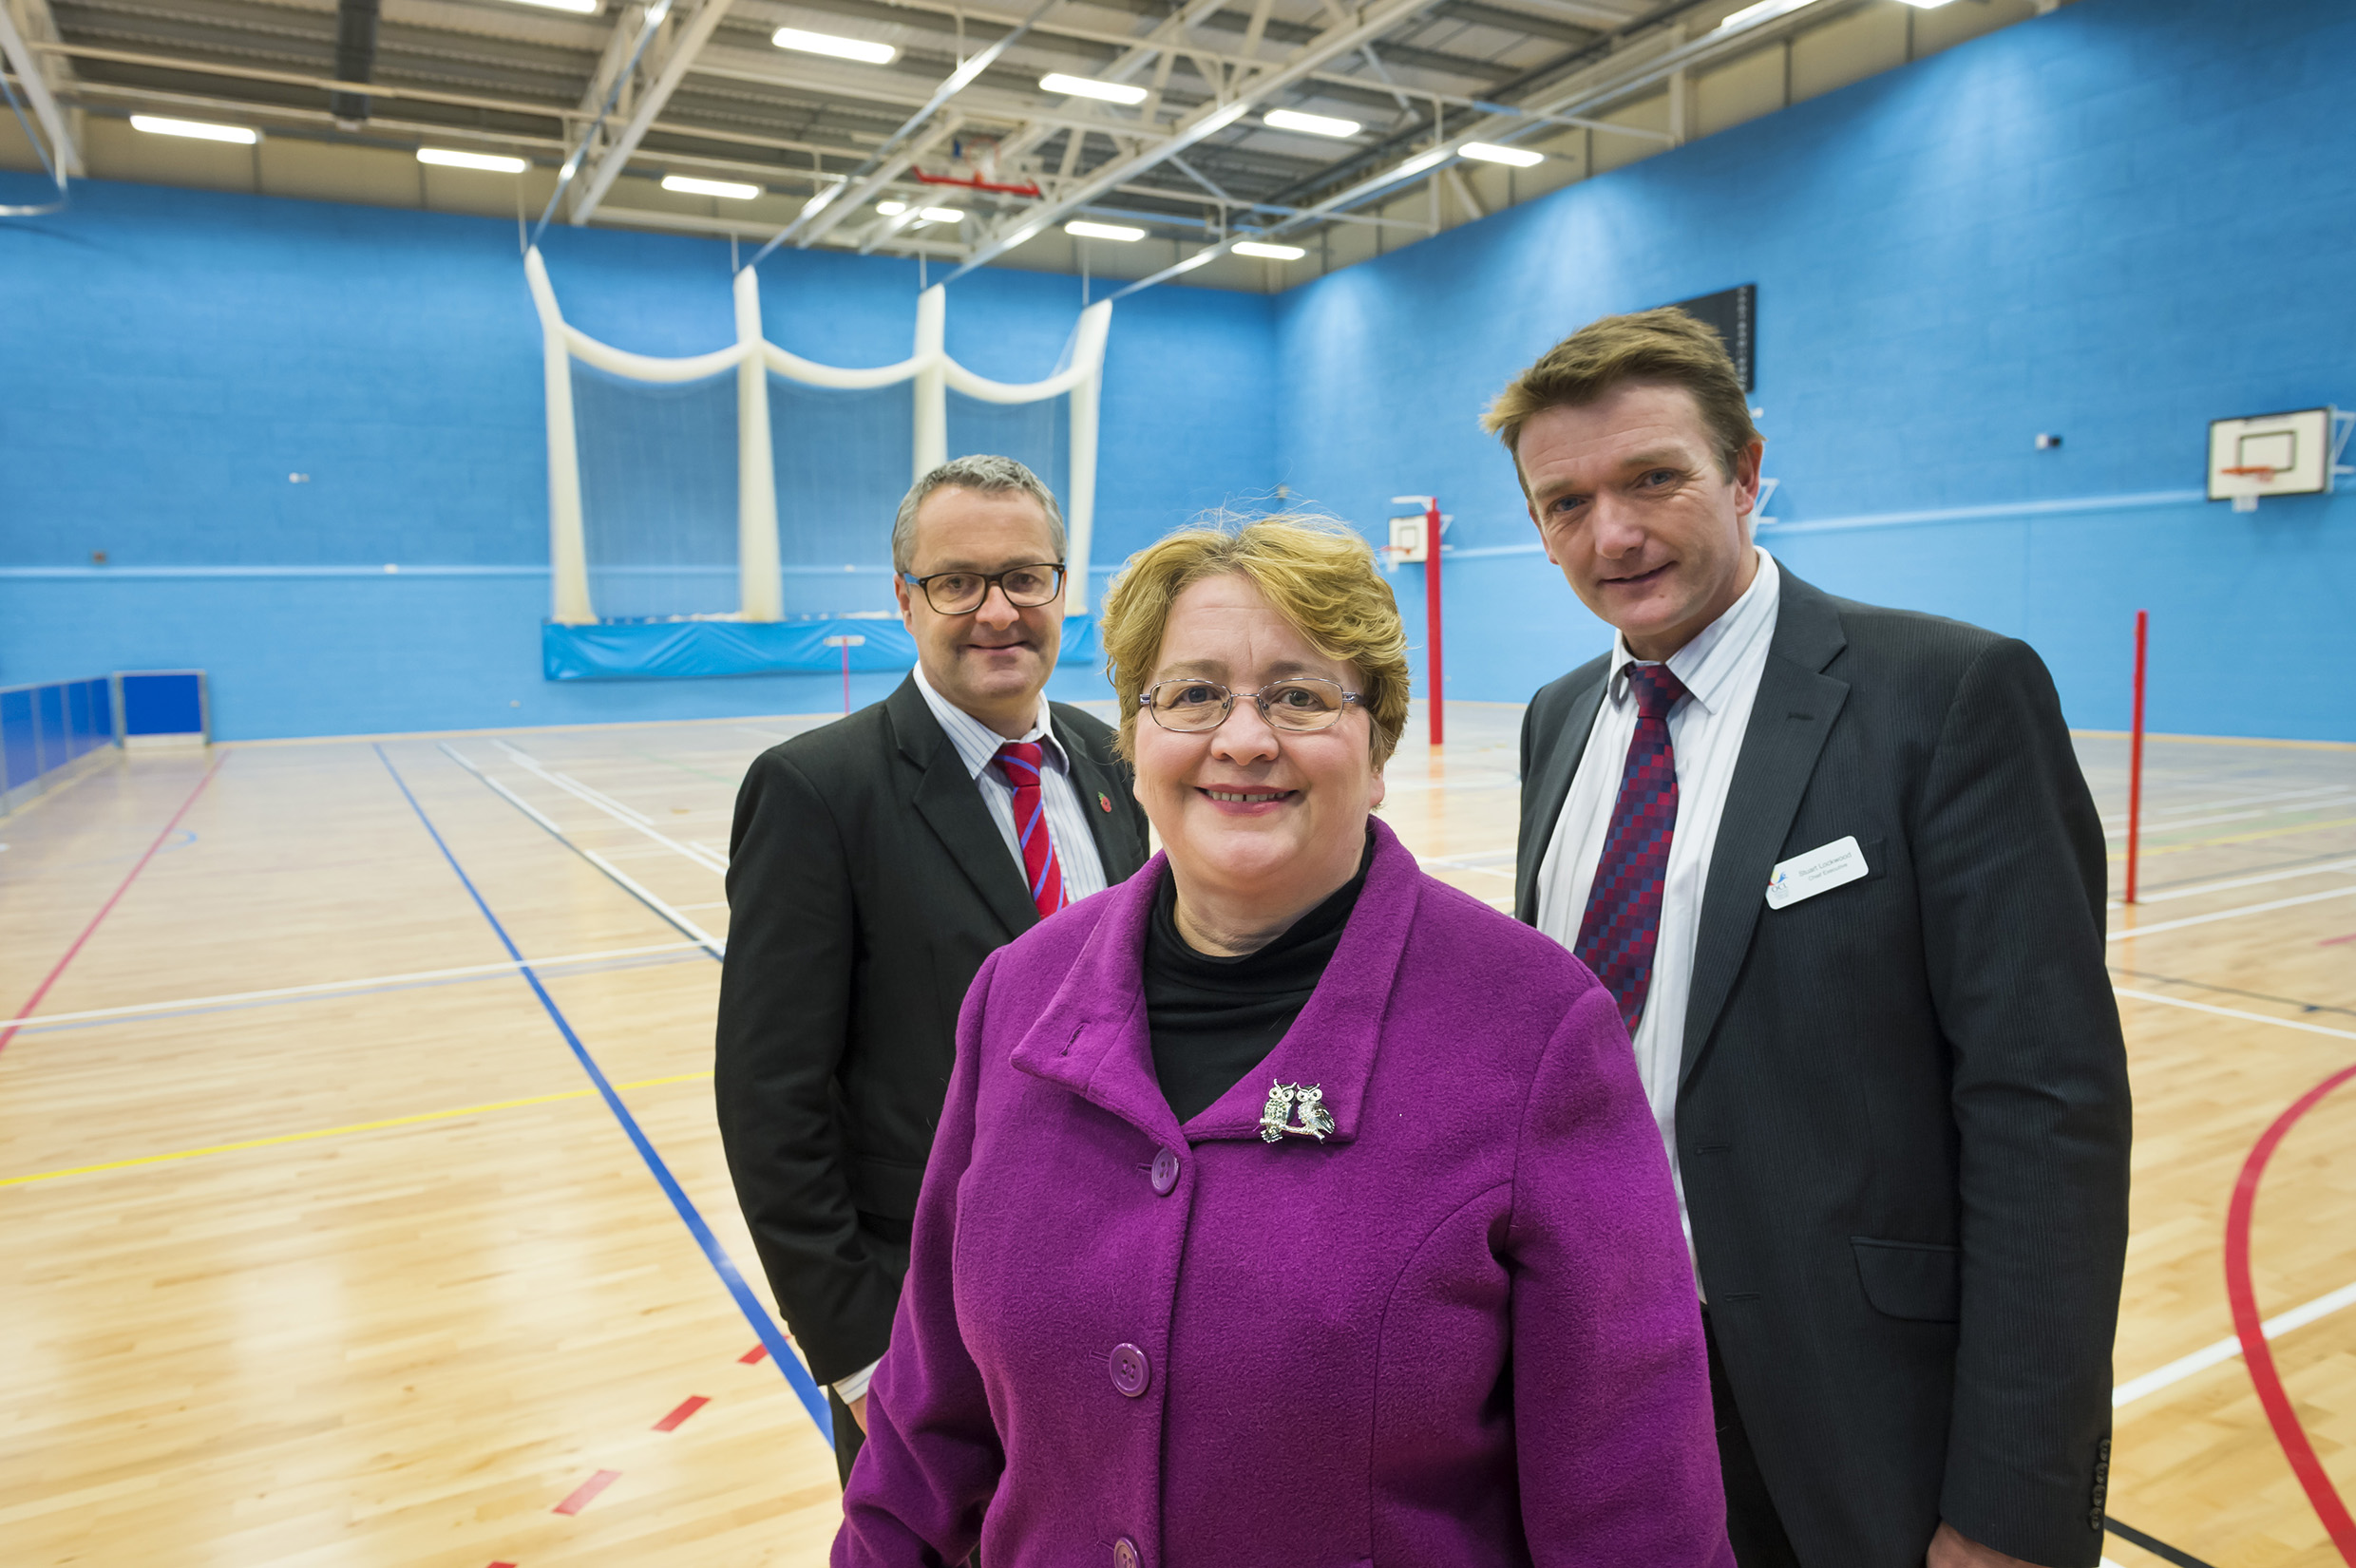 Leisure1 – (from left to right) Anthony Dillon (Willmott Dixon Northern Managing Director), Councillor Jean Stretton (Oldham Council Deputy Leader) and Stuart Lockwood (Oldham Community Leisure Chief Executive) in the new eight court sports hall.